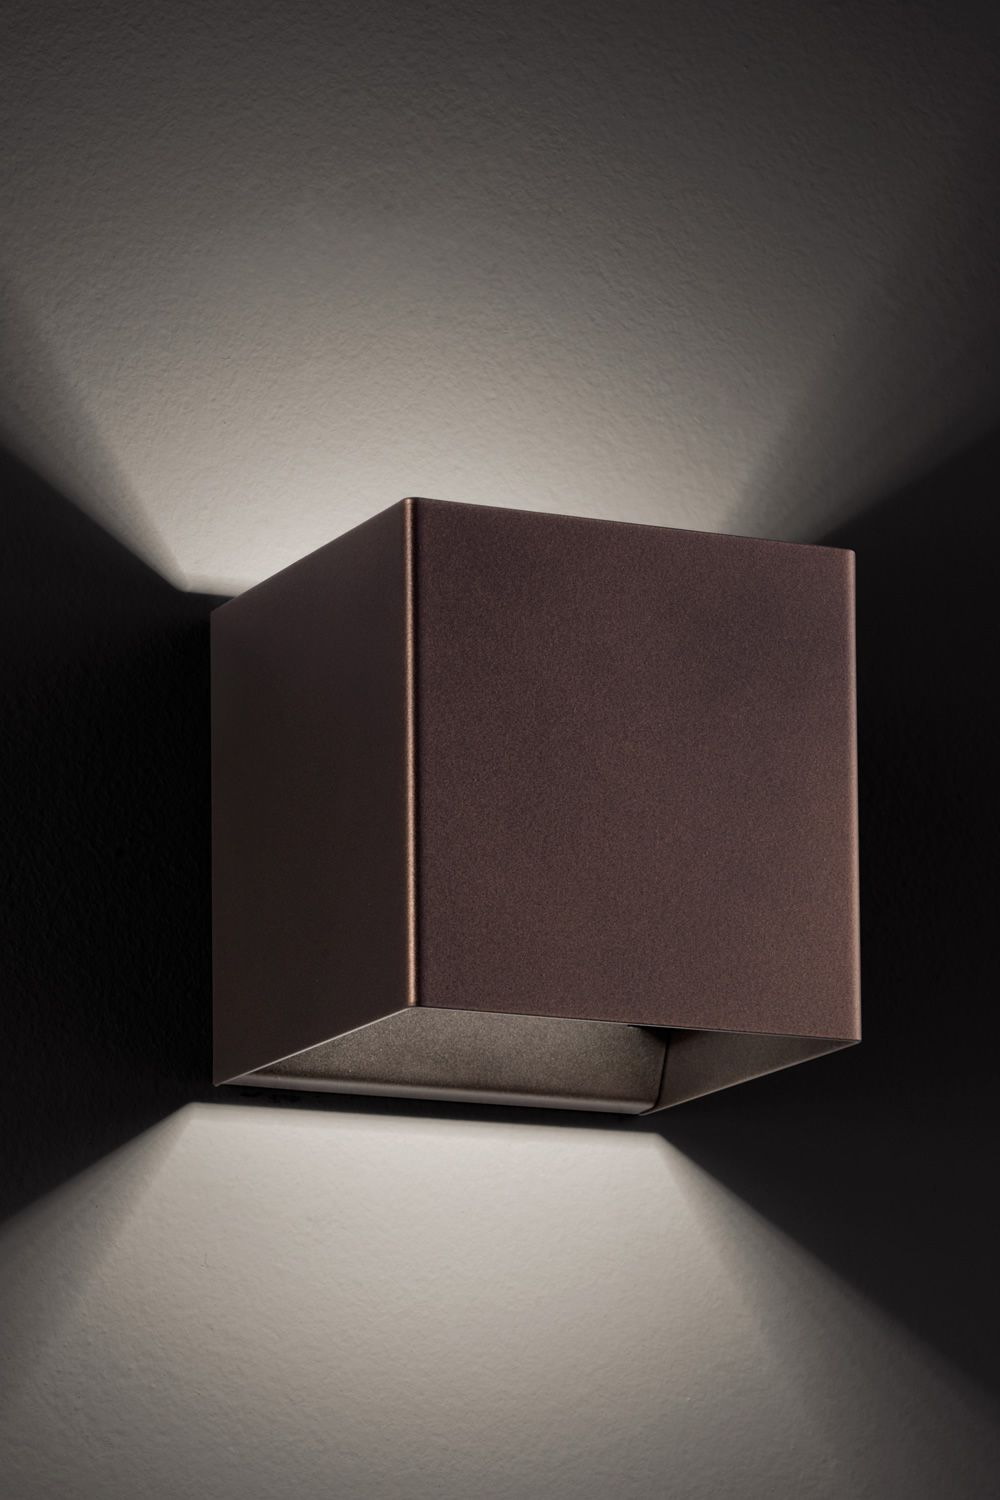 Wall lamp design, in coppery bronze metal (M)